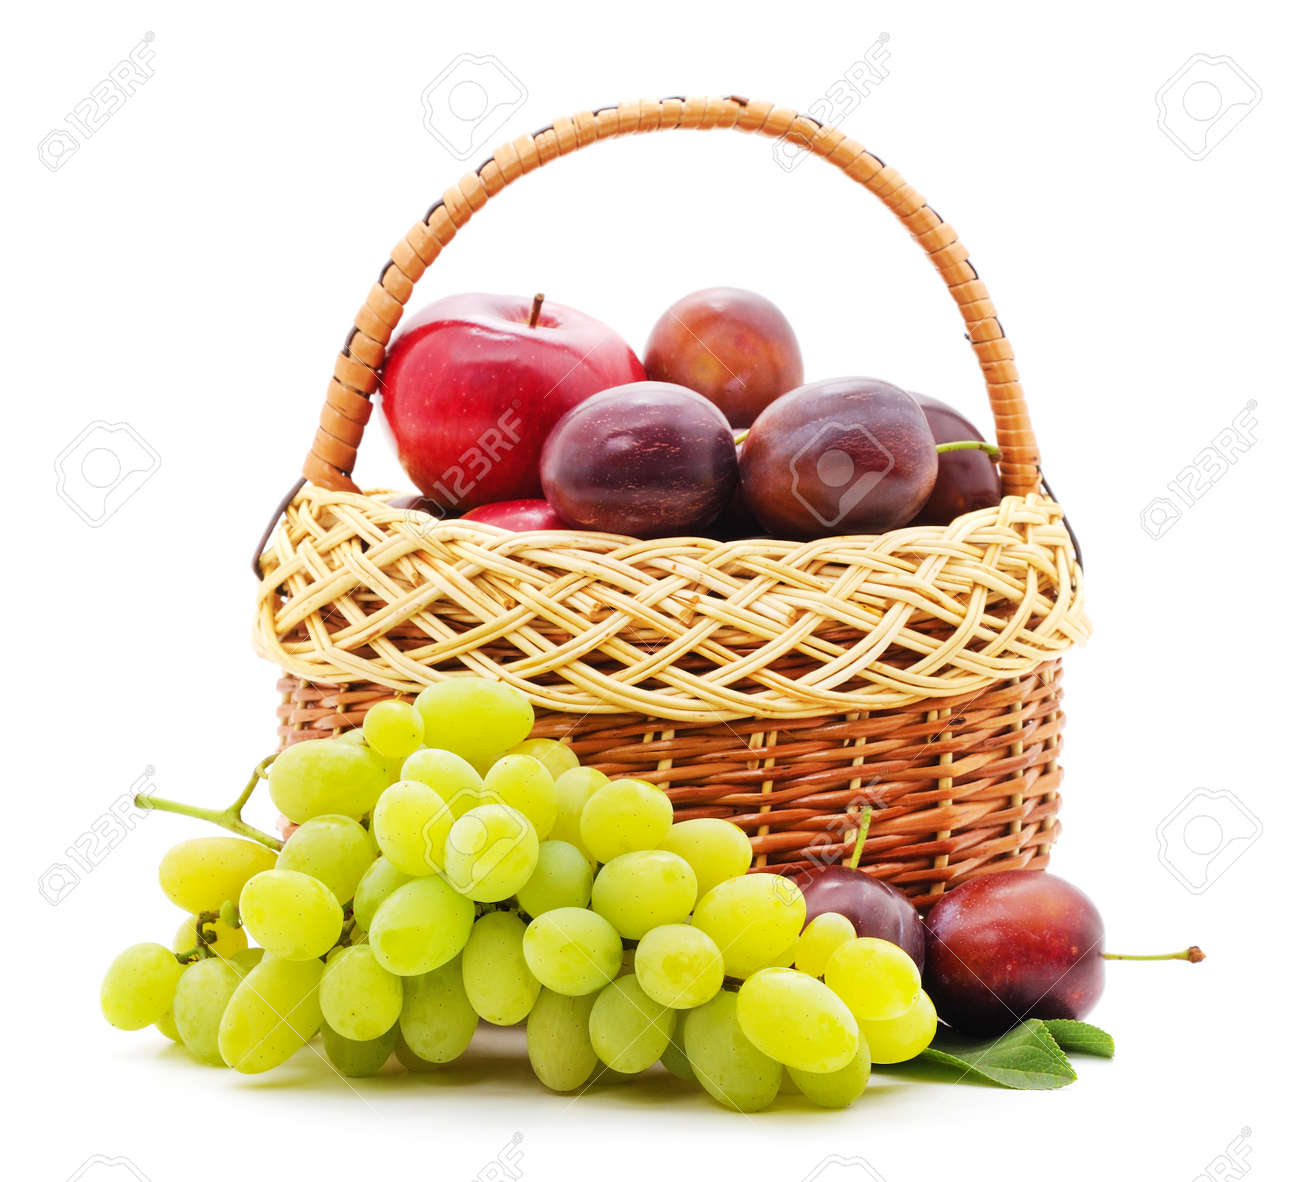 Fruits in a basket isolated on a white background. - 155326435